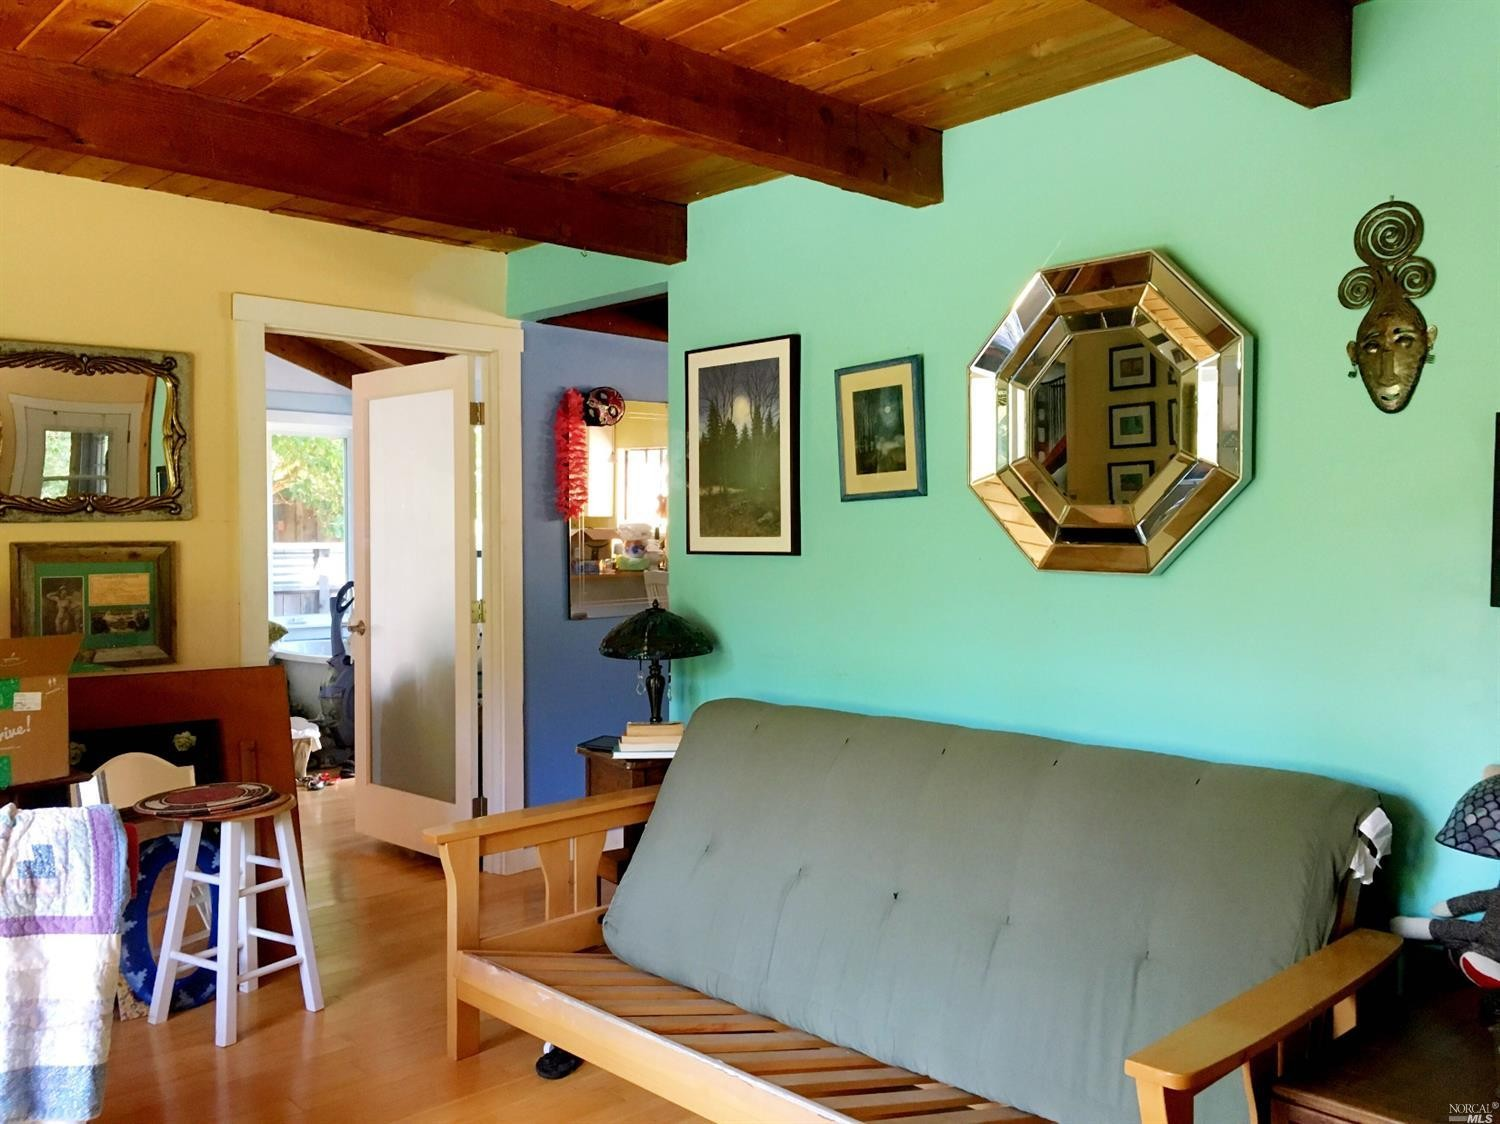 Study in a home for sale on Guntly Road in Philo, CA.